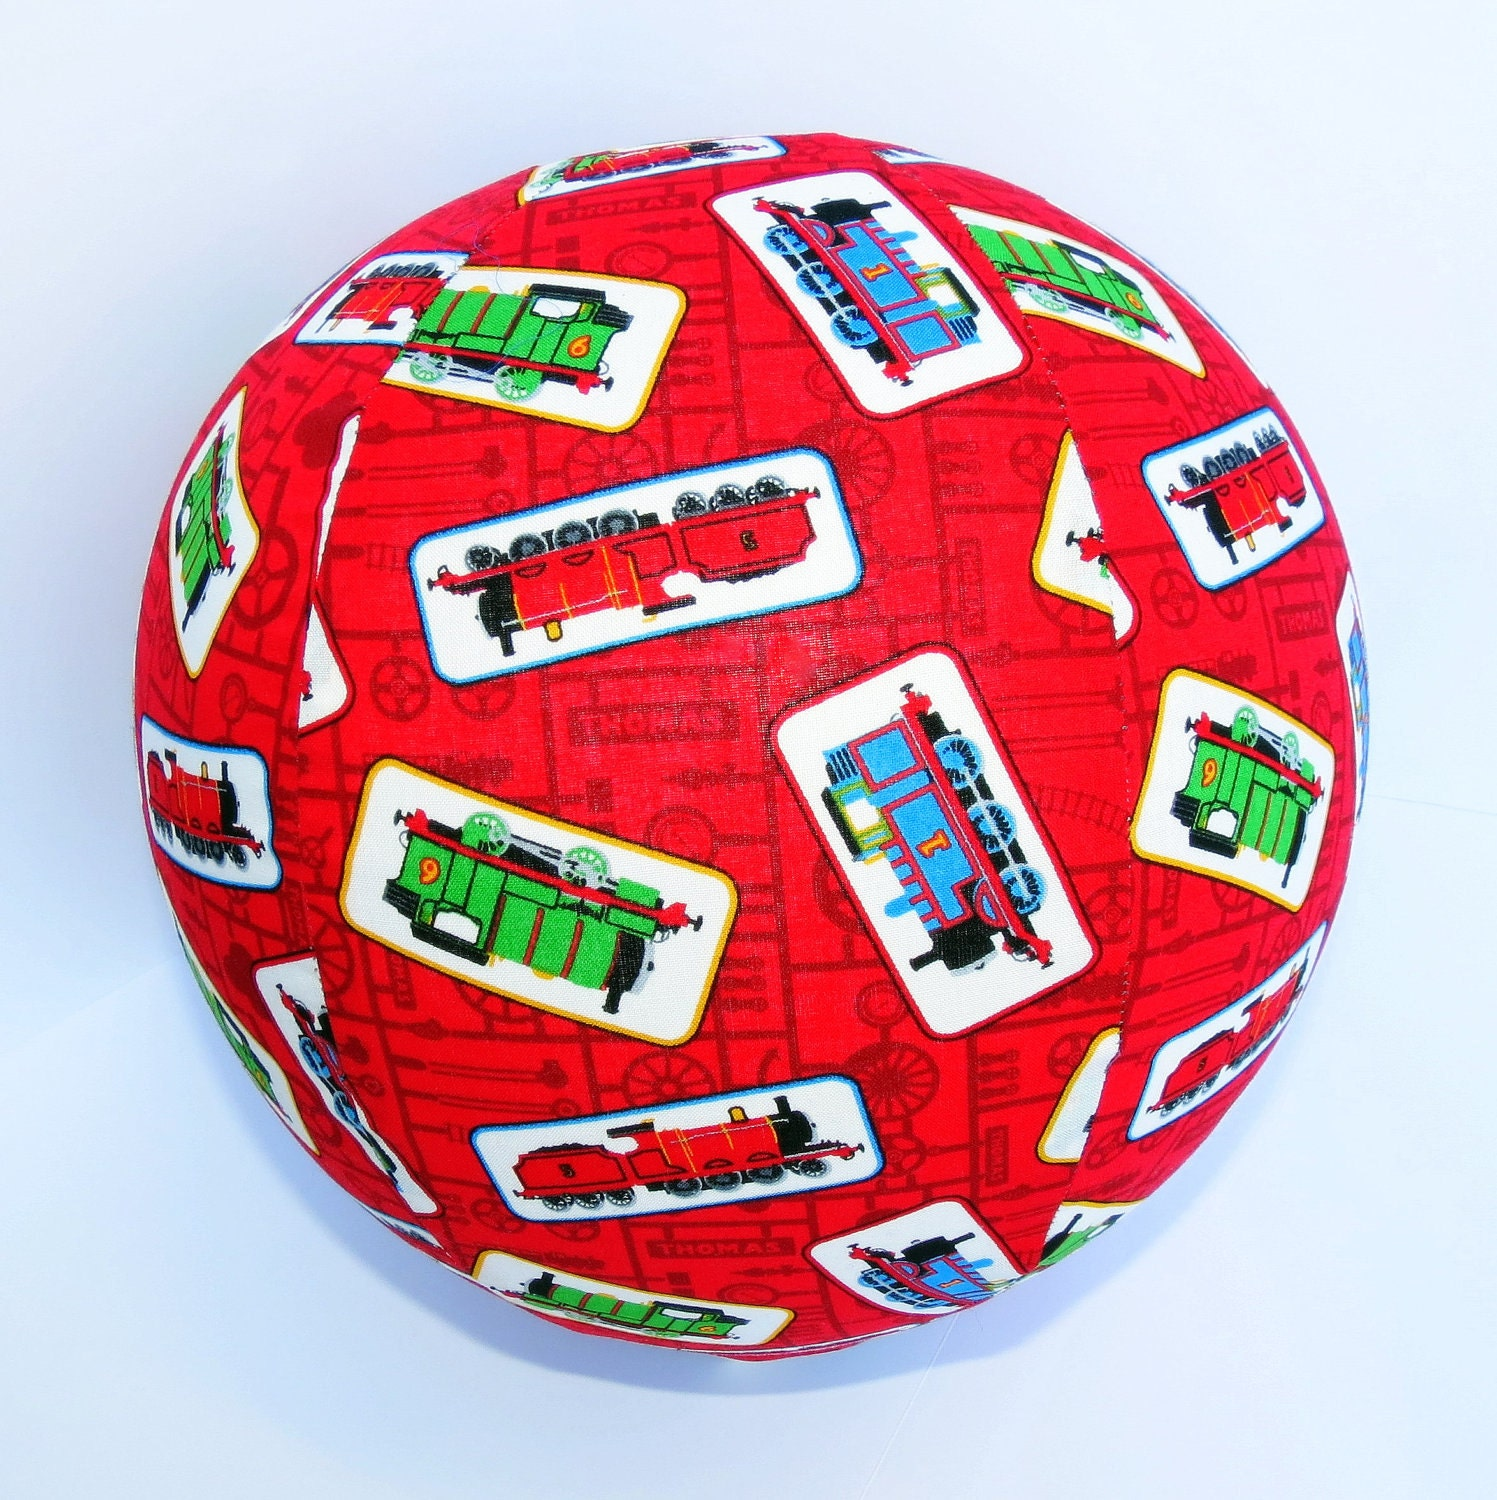 BALLOON BUDDIES, Thomas the Train, balloon ball, red, train, fabric, balloon cover, balloon, ball, toy, boy, boy toy, kids